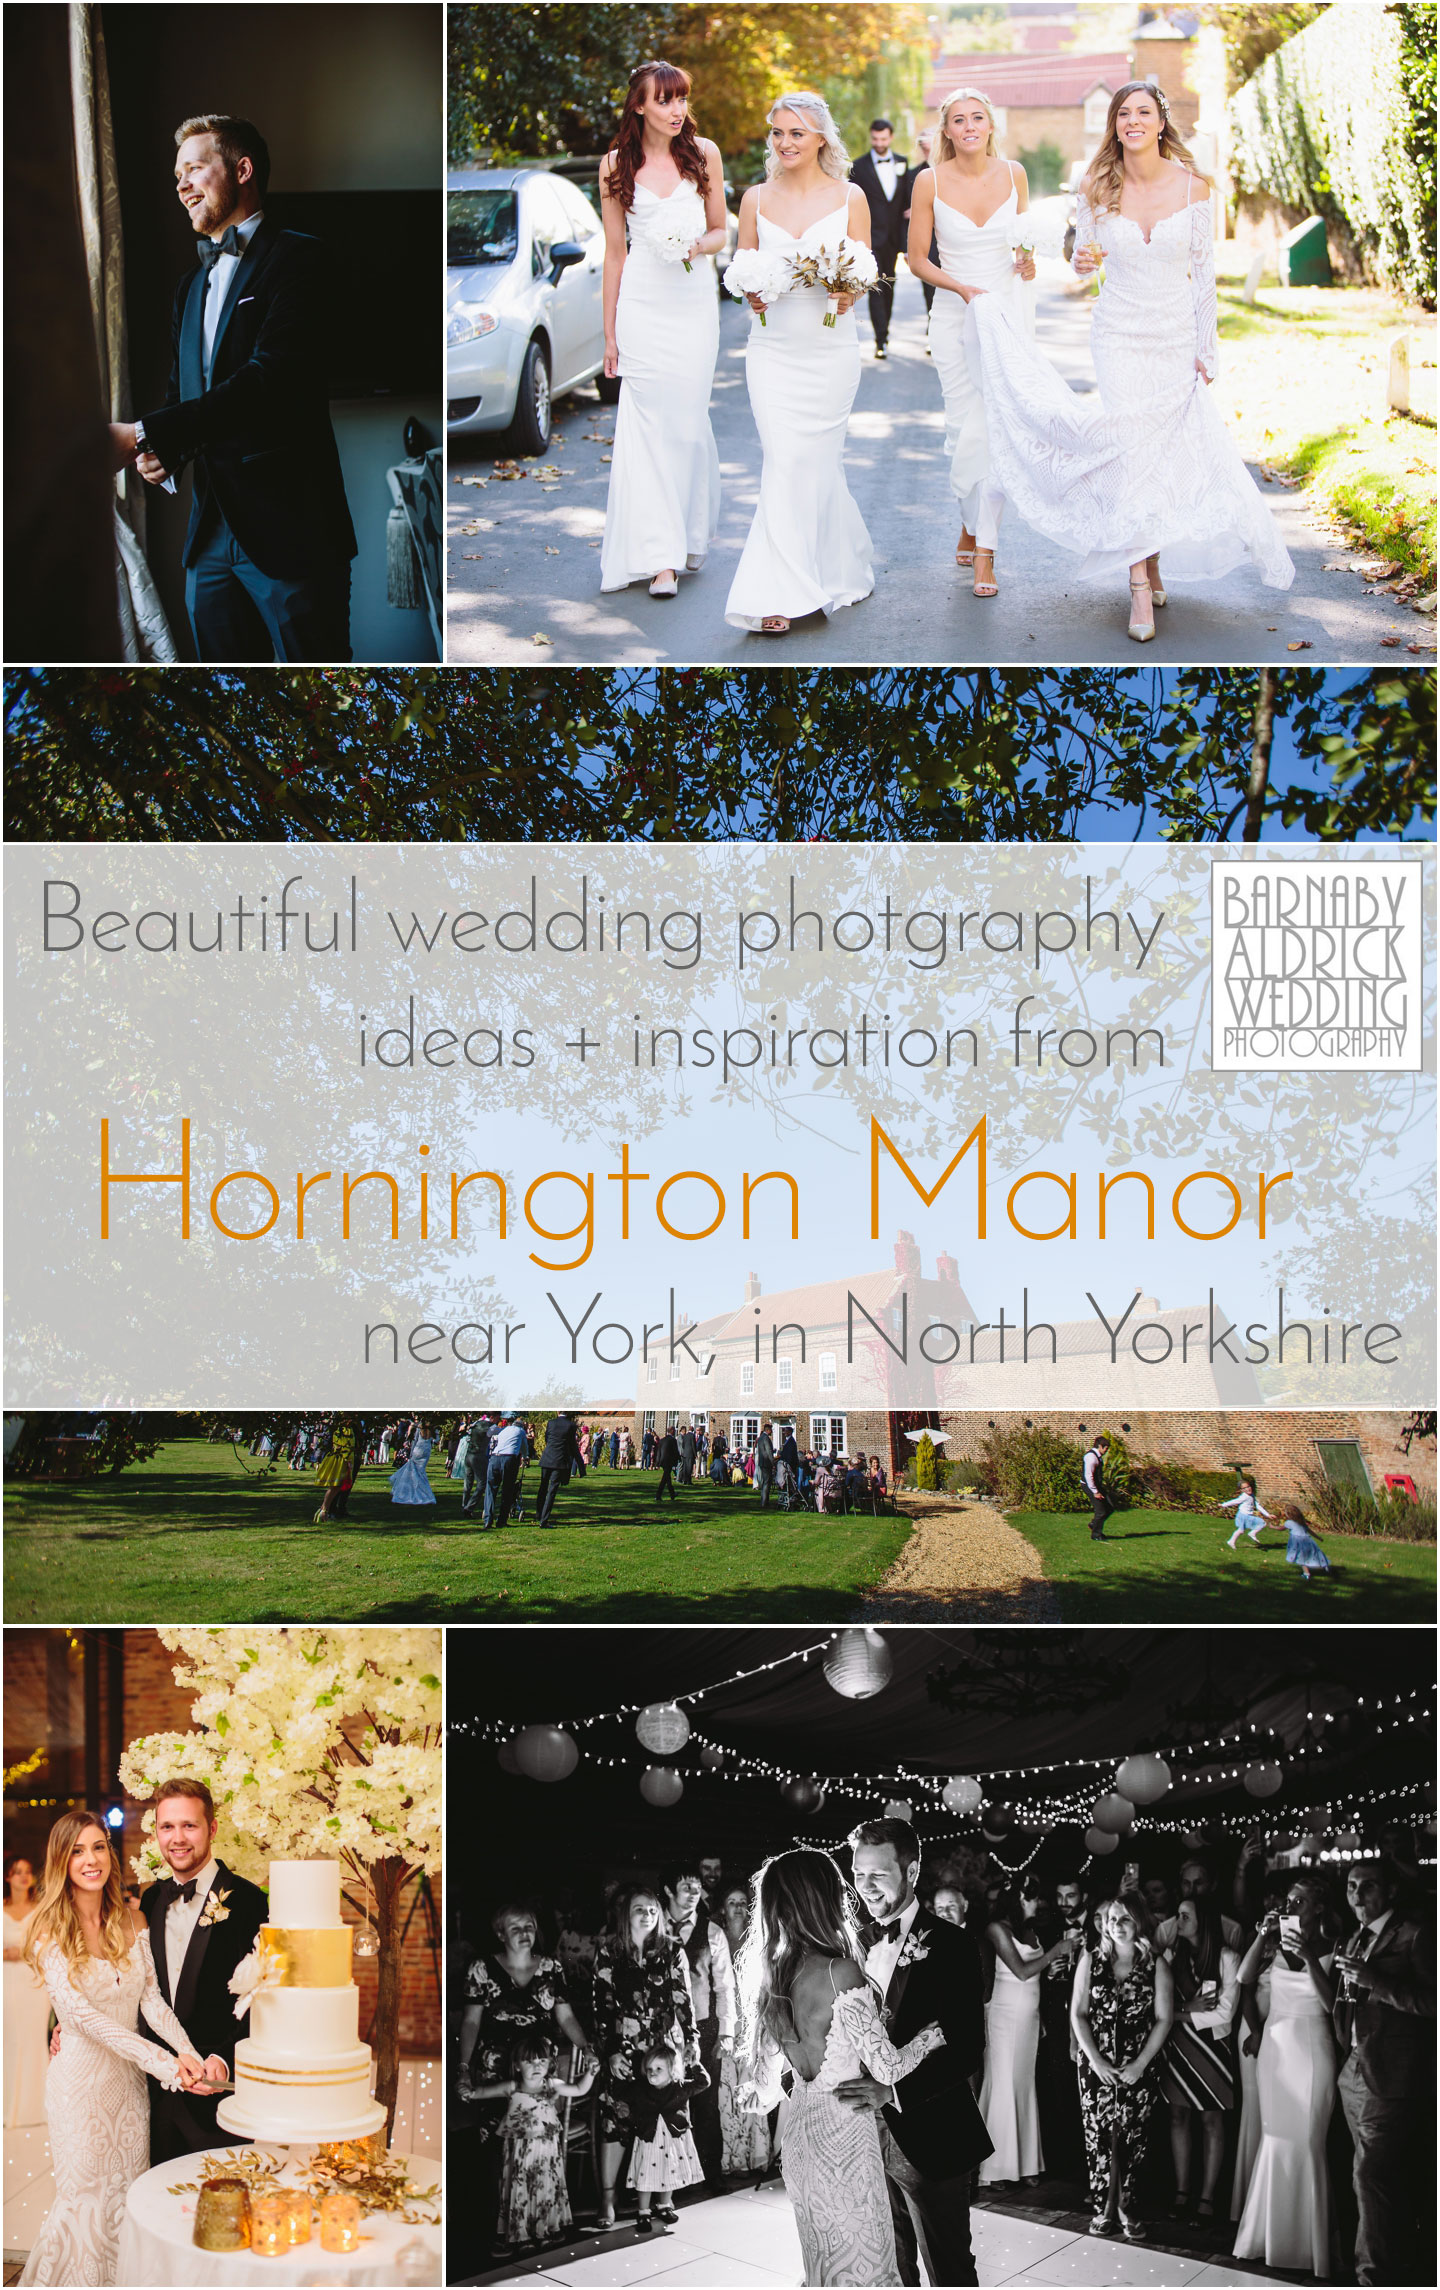 Wedding Photography at Hornington Manor near York, York Wedding Photographer, Hornington Manor York Photography, Hornington Manor Wedding